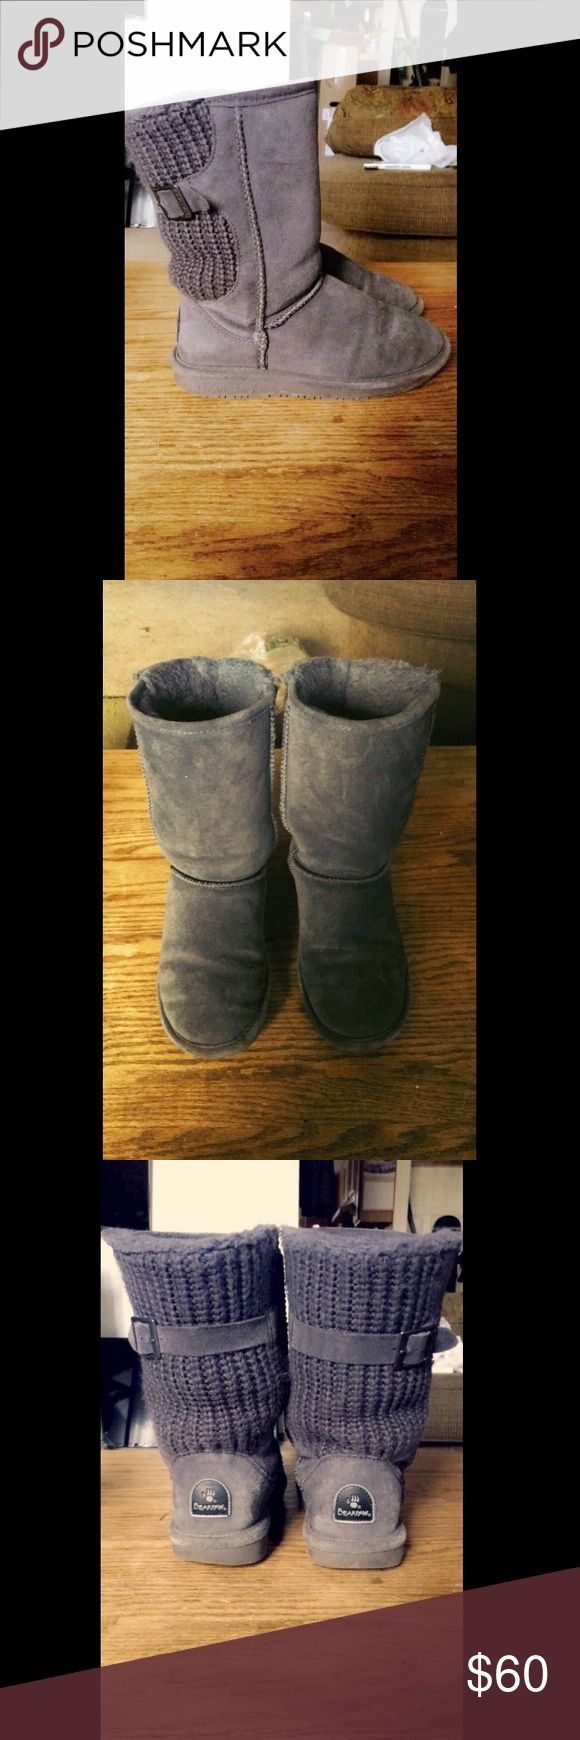 Stella BearPaw Boots Soo comfortable and extremely cute, these adorable boots are perfect to wear with leggings, jeans, and any type of Top! Gently worn a few times, but still in really great condition! BUNDLE TO SAVE!! BearPaw Shoes Ankle Boots & Booties